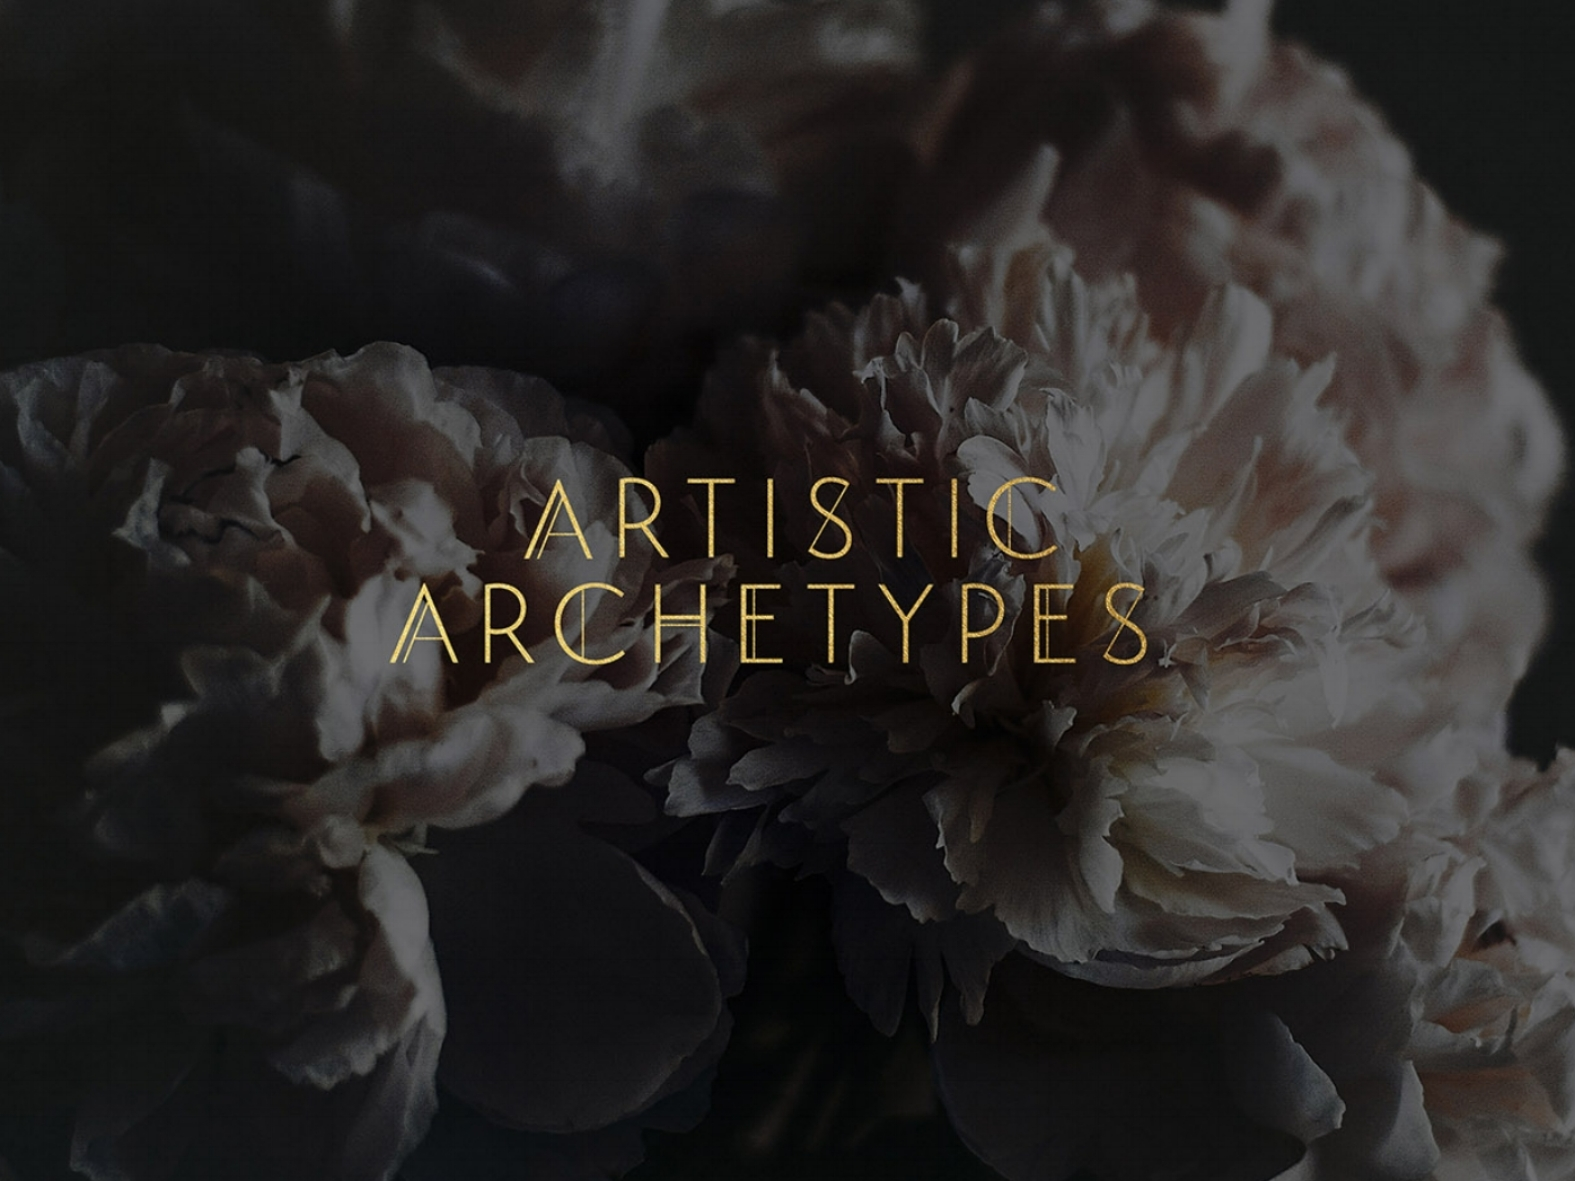 Artistic Archetypes